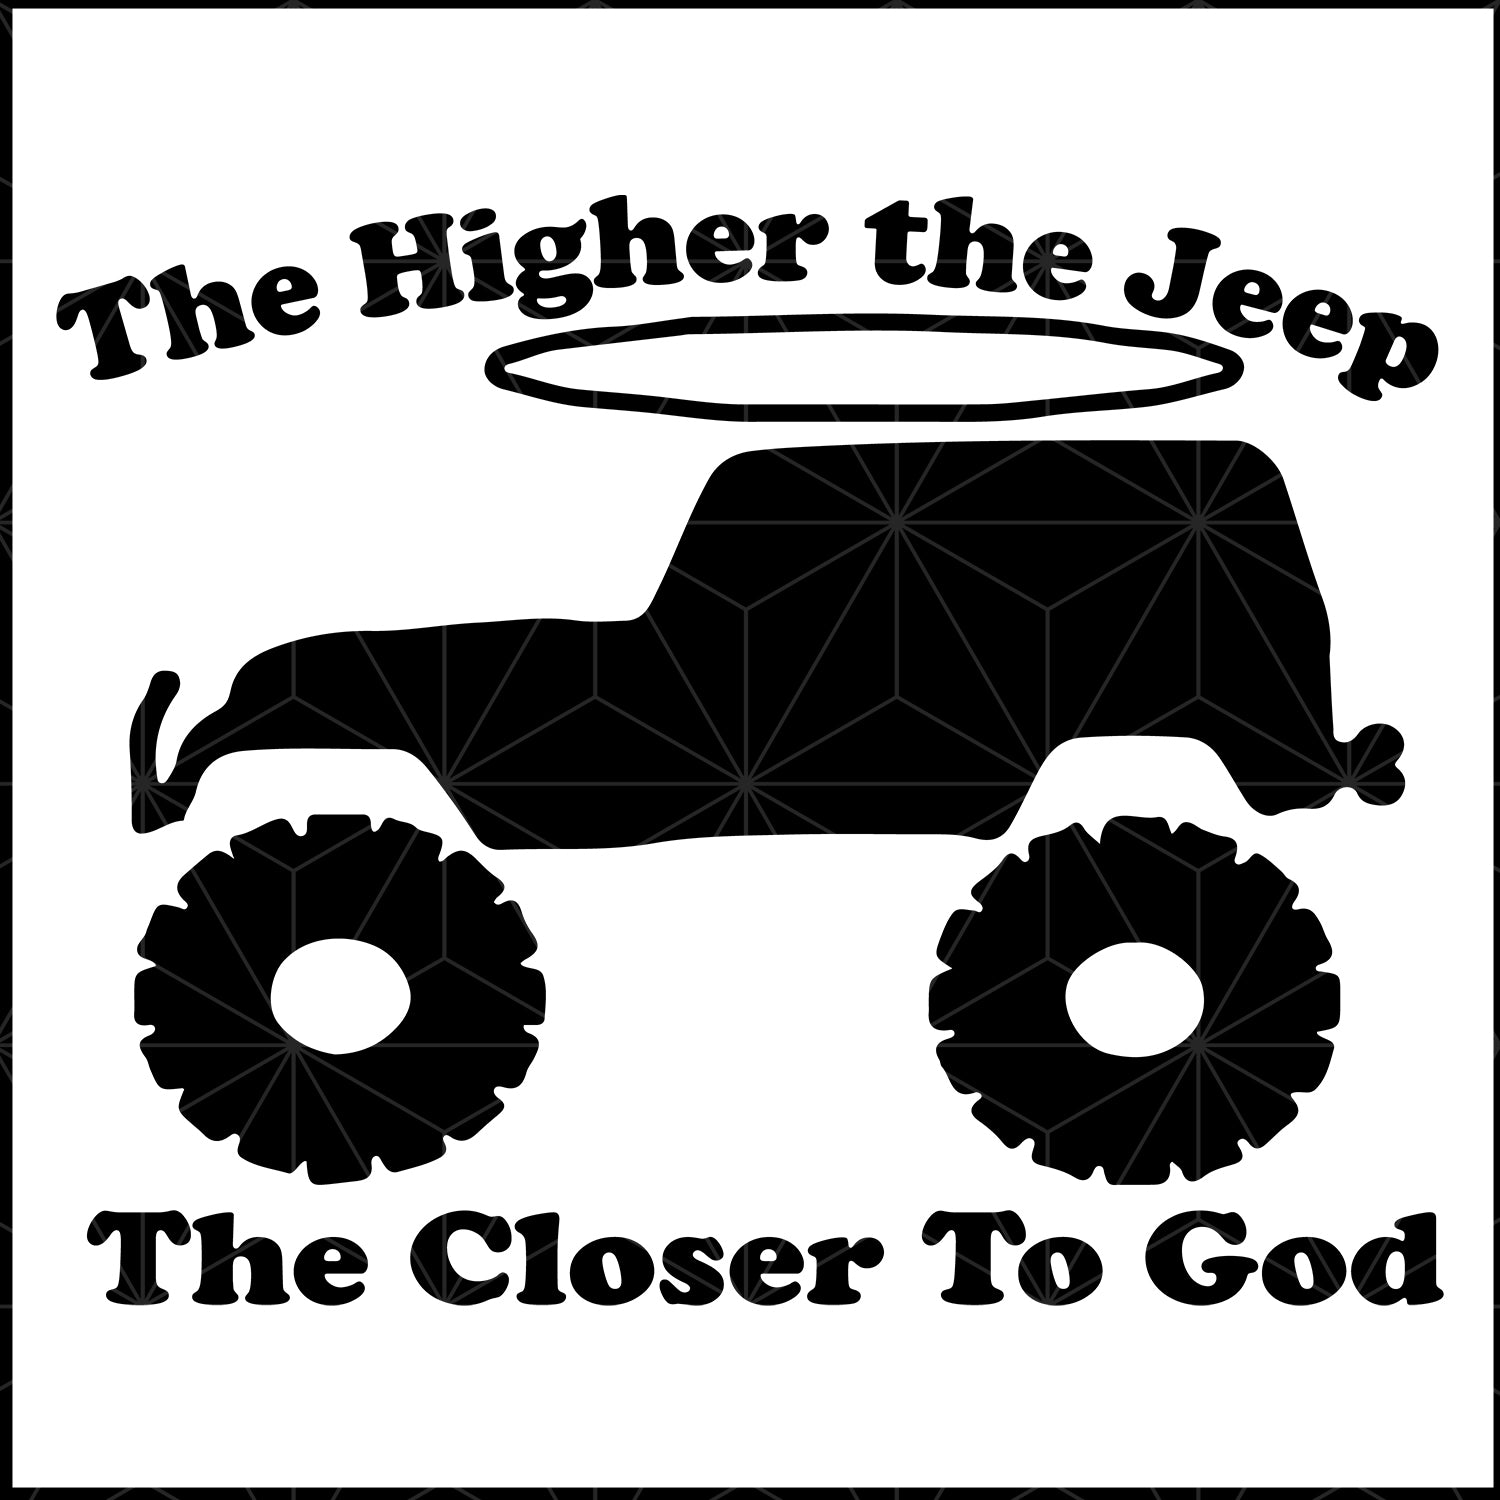 The higher the jeep svg,jeep svg,jeep clipart, jeep cut file, jeep svg files, jeep lover gift, jeep decal, jeep truck svg, jeep shirt,jeep truck shirt, jeep truck print, jeep truck silhouette,funny svg,